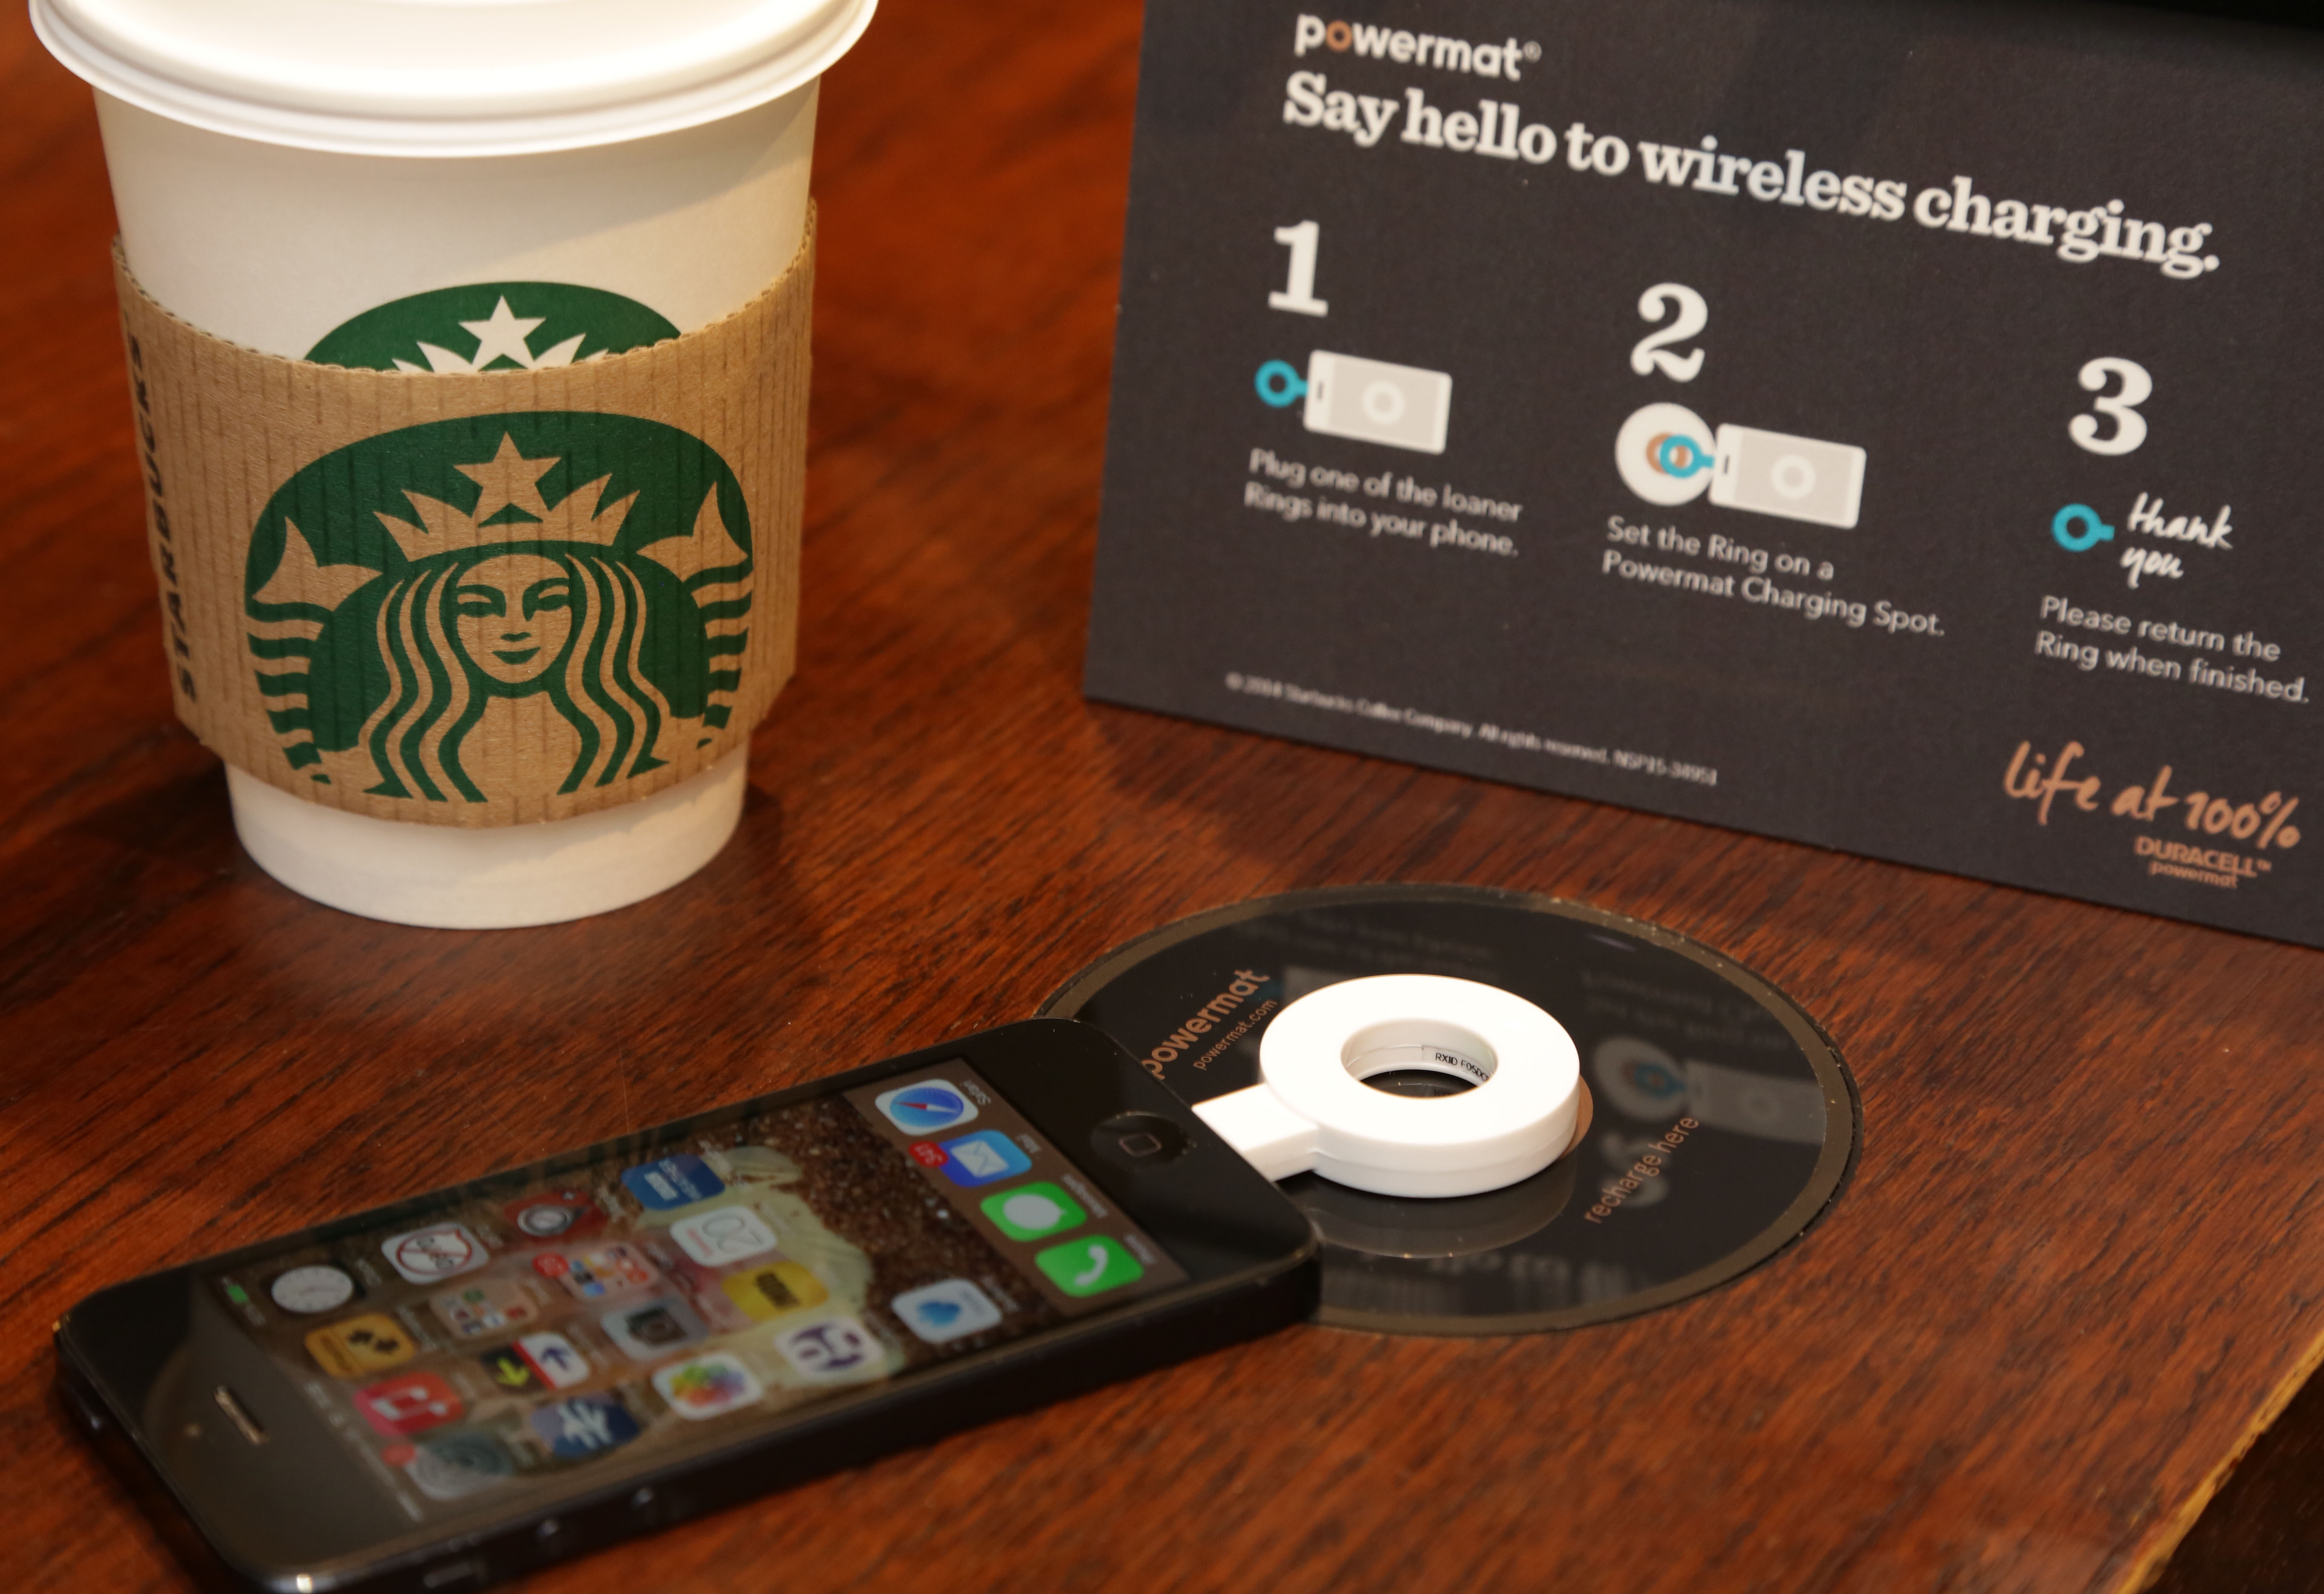 A wireless charging Powermat in Starbucks